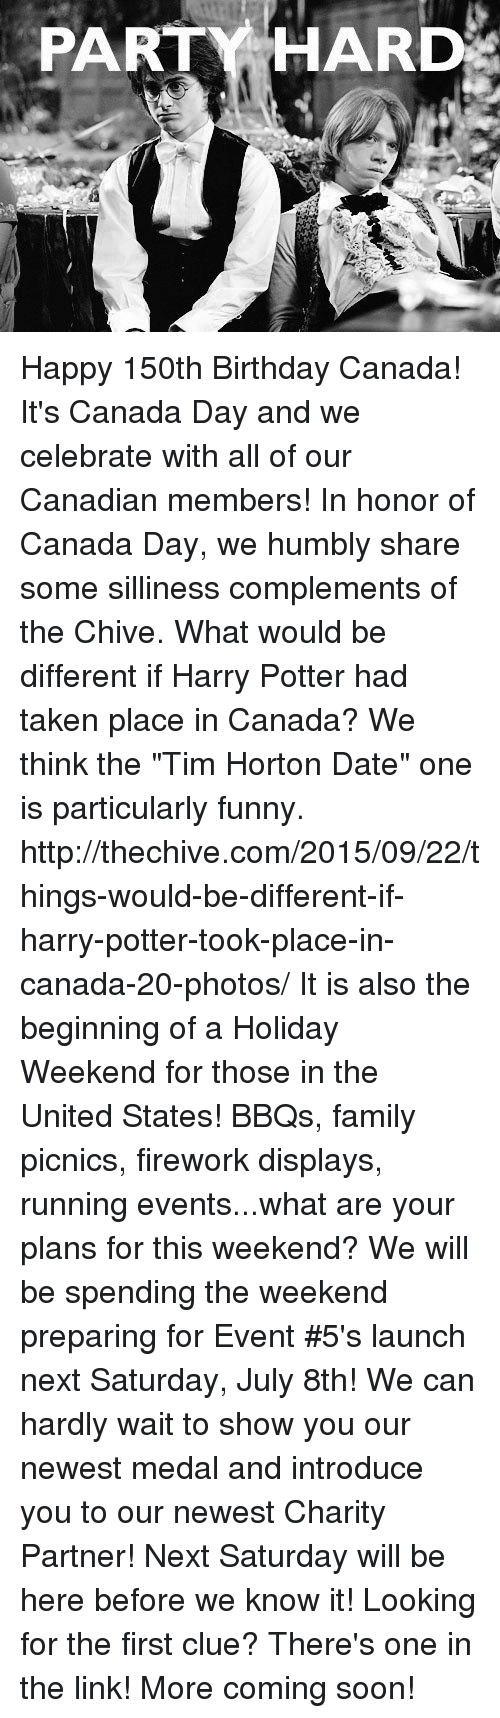 """the chives: PARTY HARD Happy 150th Birthday Canada!  It's Canada Day and we celebrate with all of our Canadian members!  In honor of Canada Day, we humbly share some silliness complements of the Chive.  What would be different if Harry Potter had taken place in Canada?  We think the """"Tim Horton Date"""" one is particularly funny.  http://thechive.com/2015/09/22/things-would-be-different-if-harry-potter-took-place-in-canada-20-photos/       It is also the beginning of a Holiday Weekend for those in the United States! BBQs, family picnics, firework displays, running events...what are your plans for this weekend?         We will be spending the weekend preparing for Event #5's launch next Saturday, July 8th! We can hardly wait to show you our newest medal and introduce you to our newest Charity Partner! Next Saturday will be here before we know it!        Looking for the first clue?  There's one in the link!  More coming soon!"""